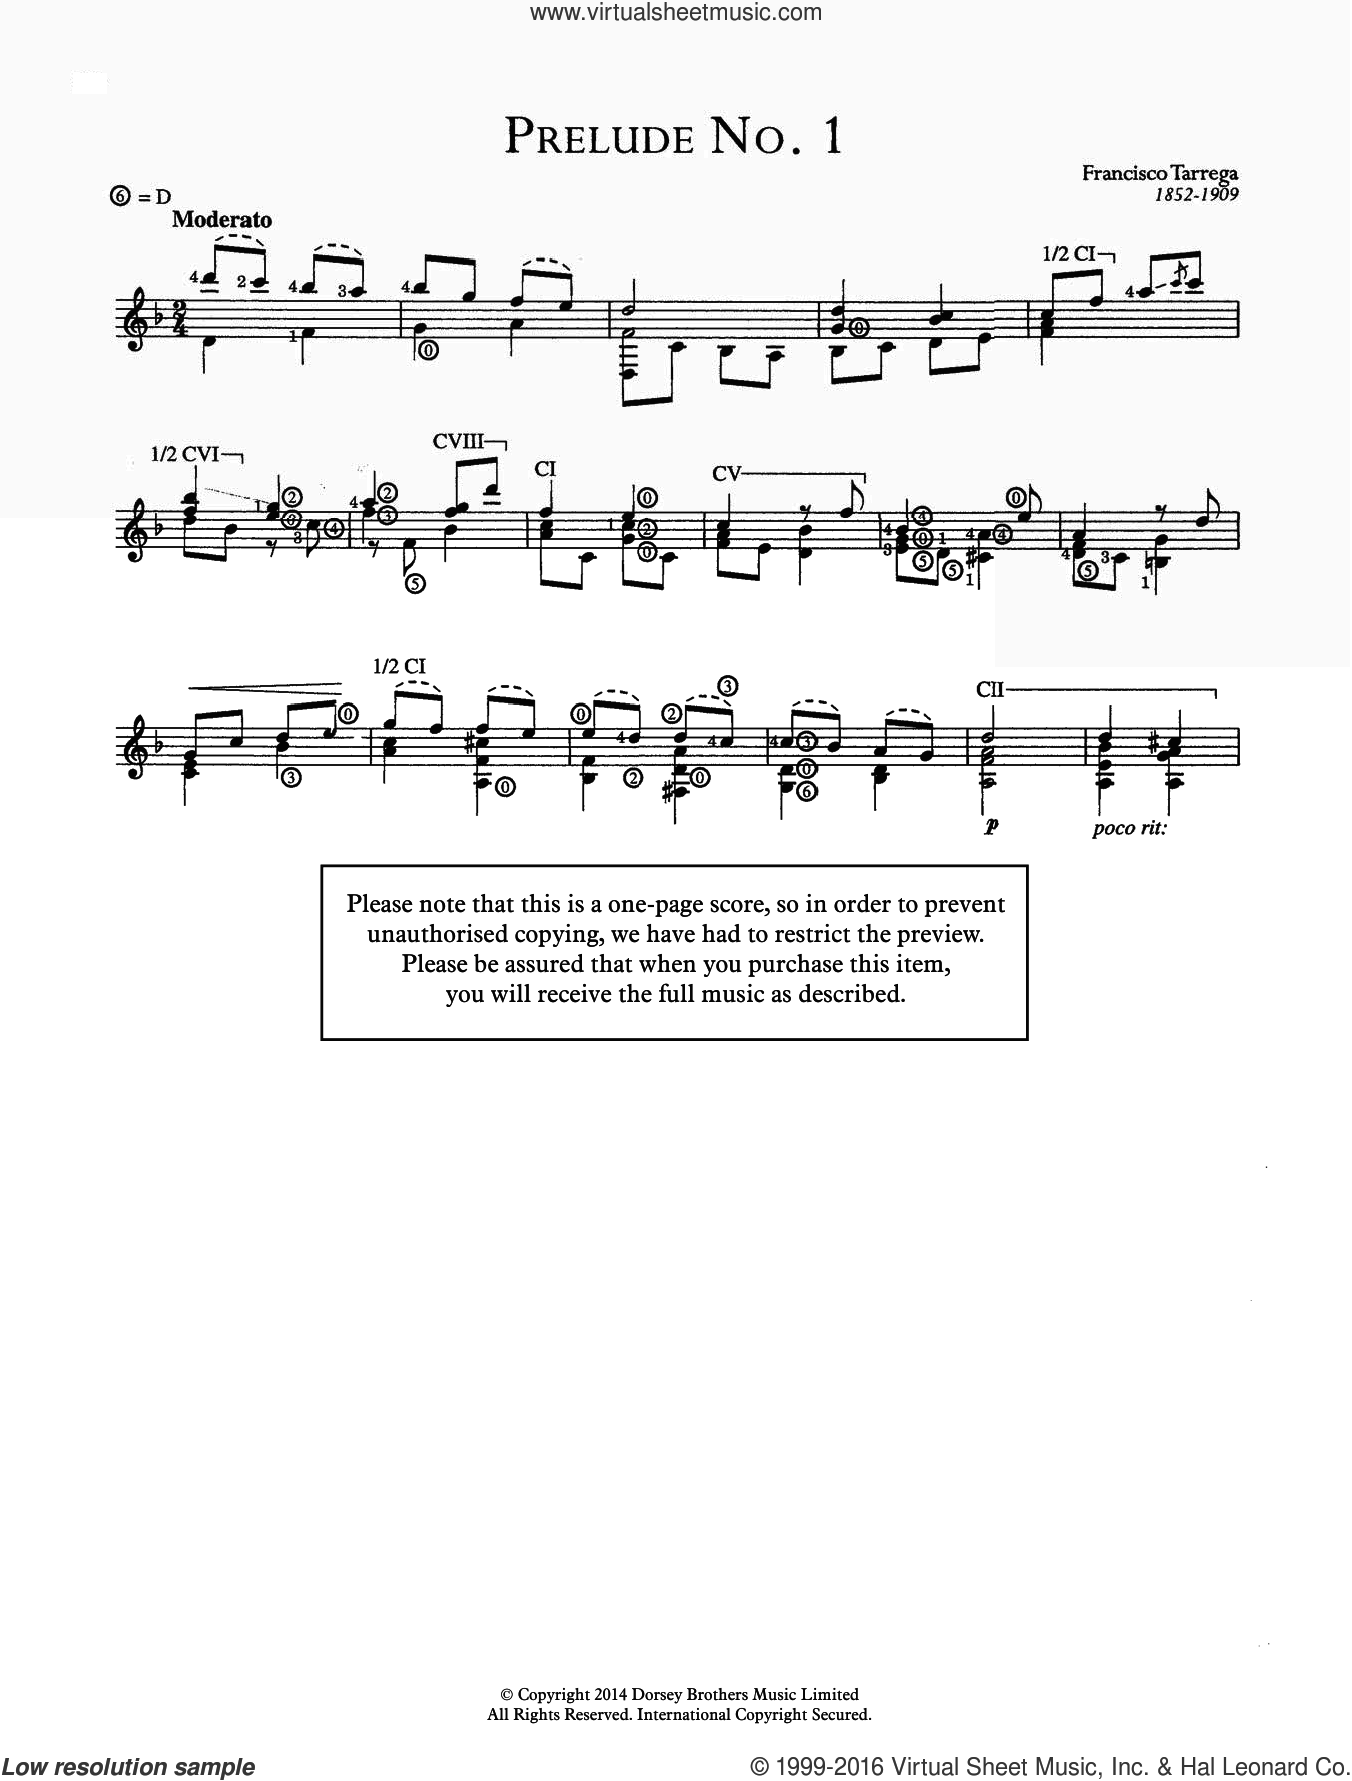 Prelude No.1 sheet music for guitar solo (chords) by Francisco Tarrega, classical score, easy guitar (chords)